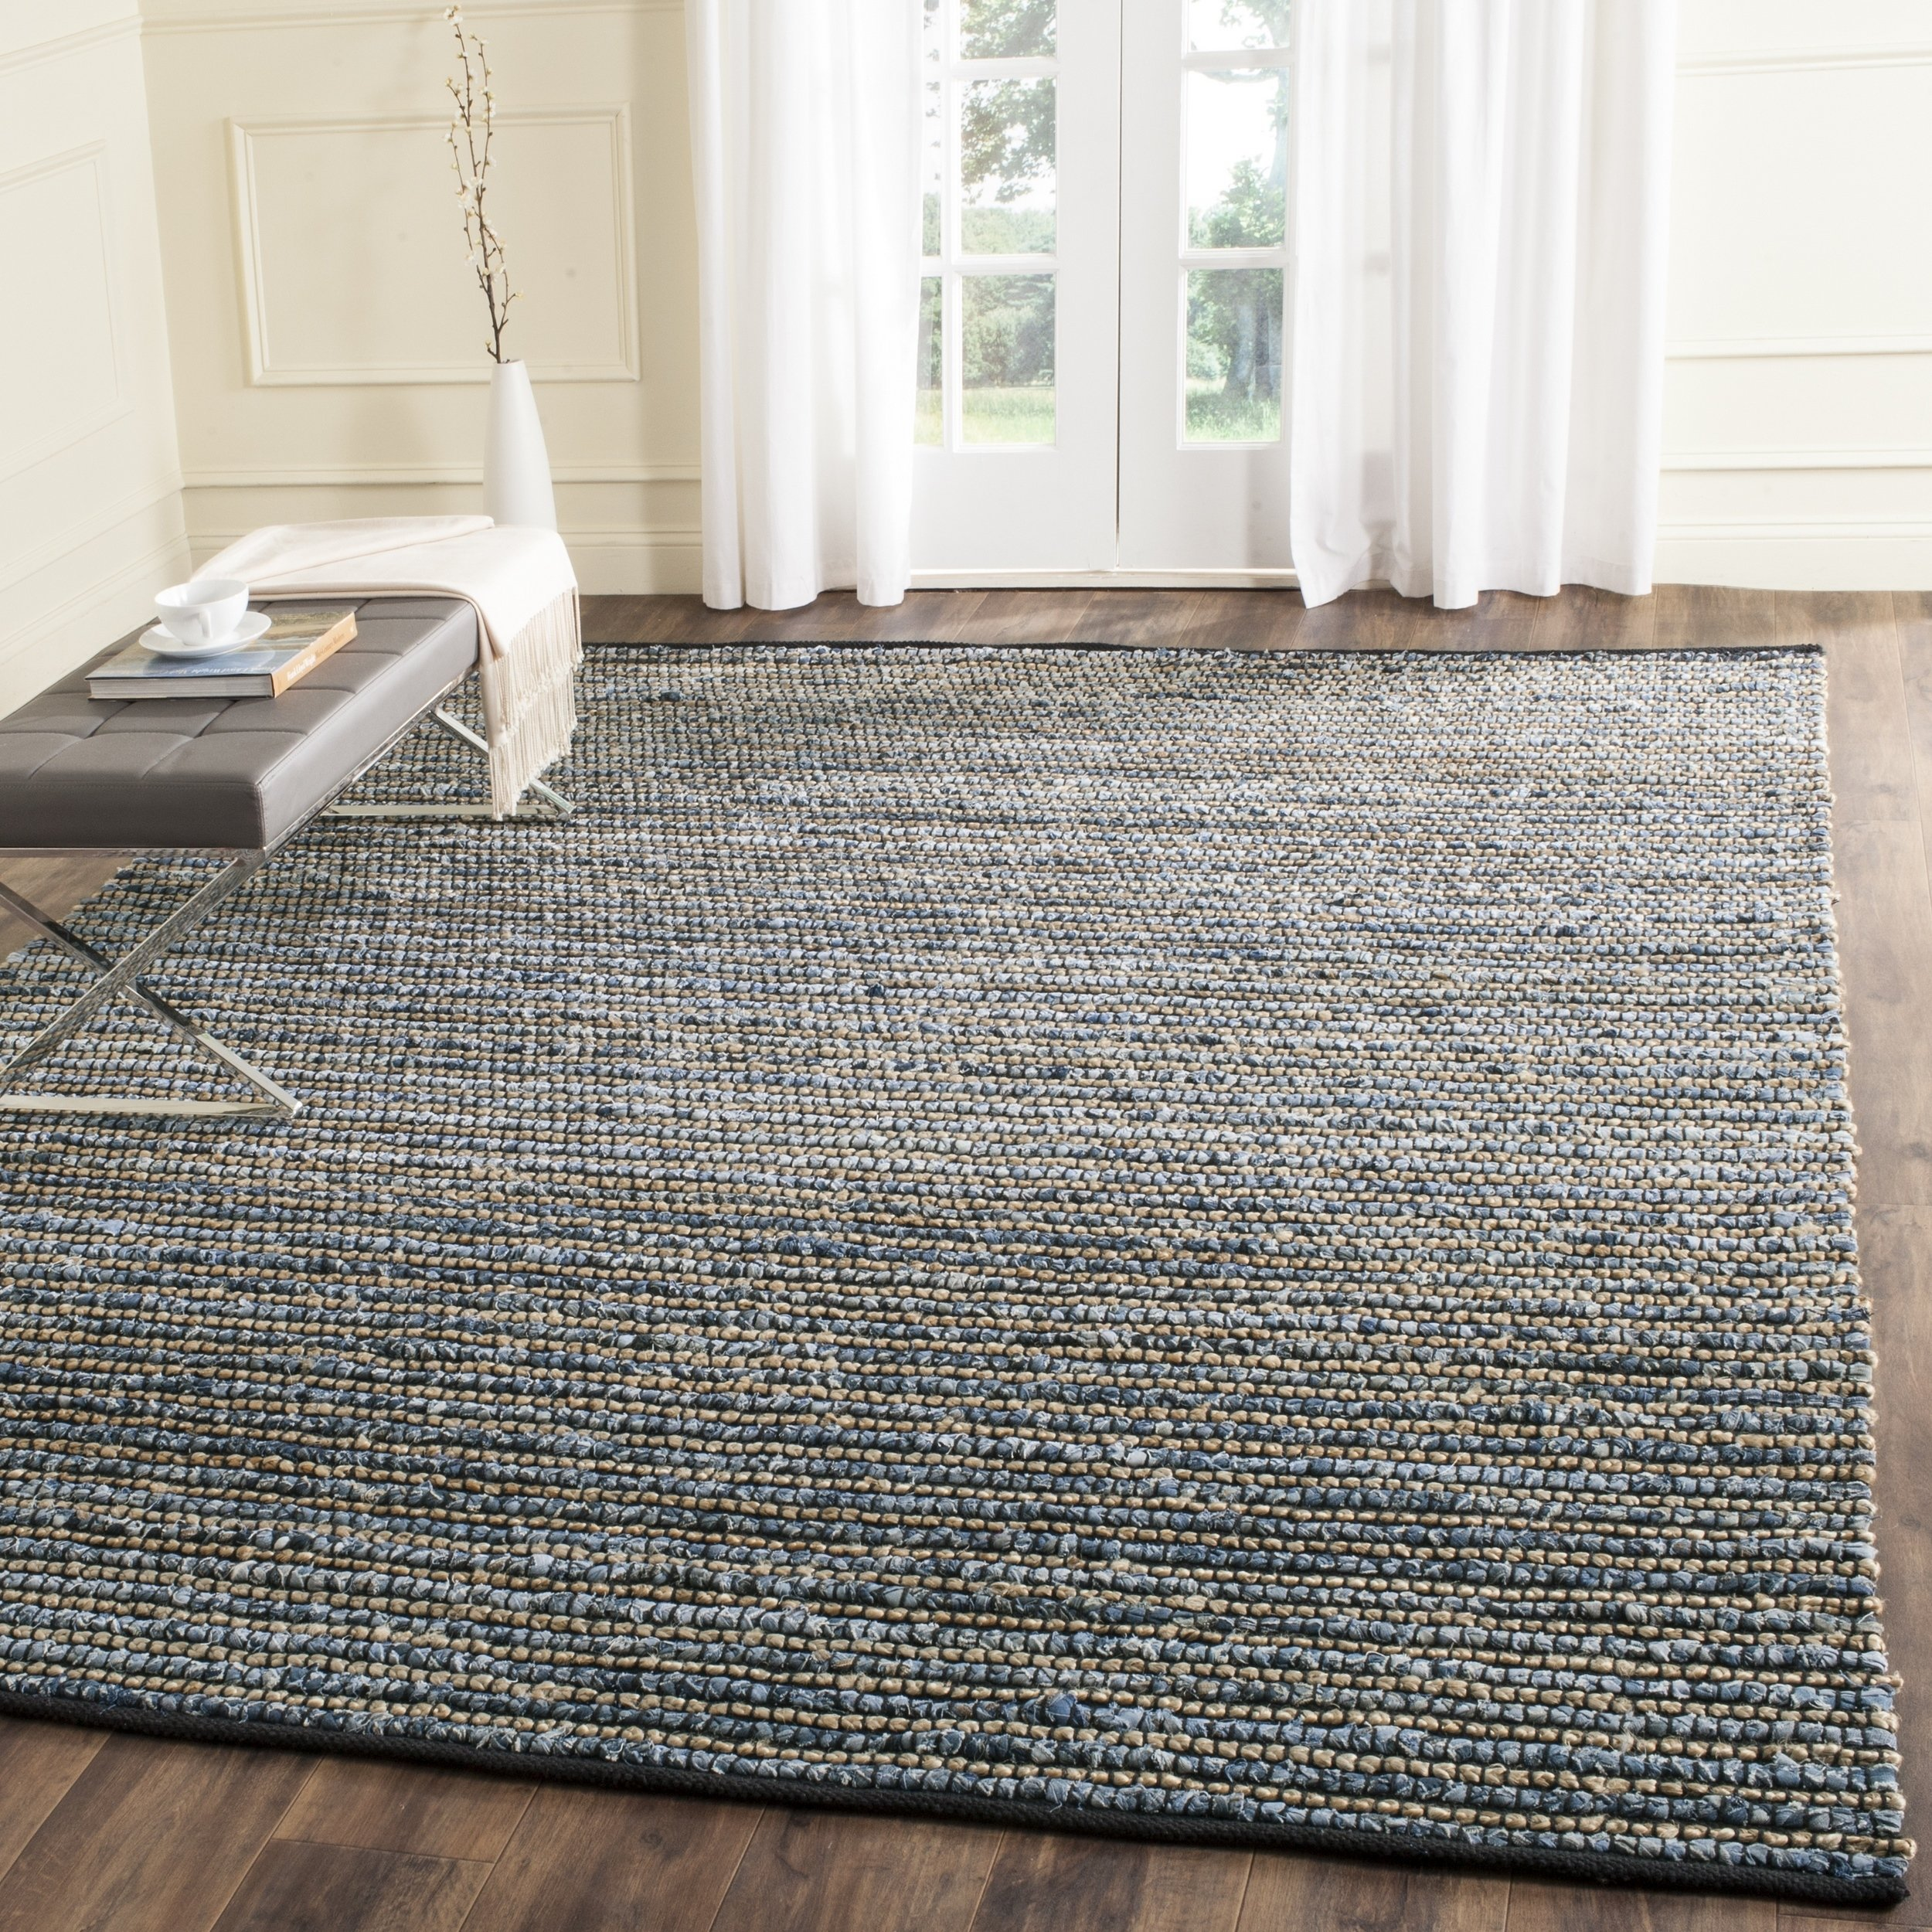 Safavieh Cape Cod Collection CAP365A Hand Woven Blue Jute Area Rug (11' x 16') by Safavieh